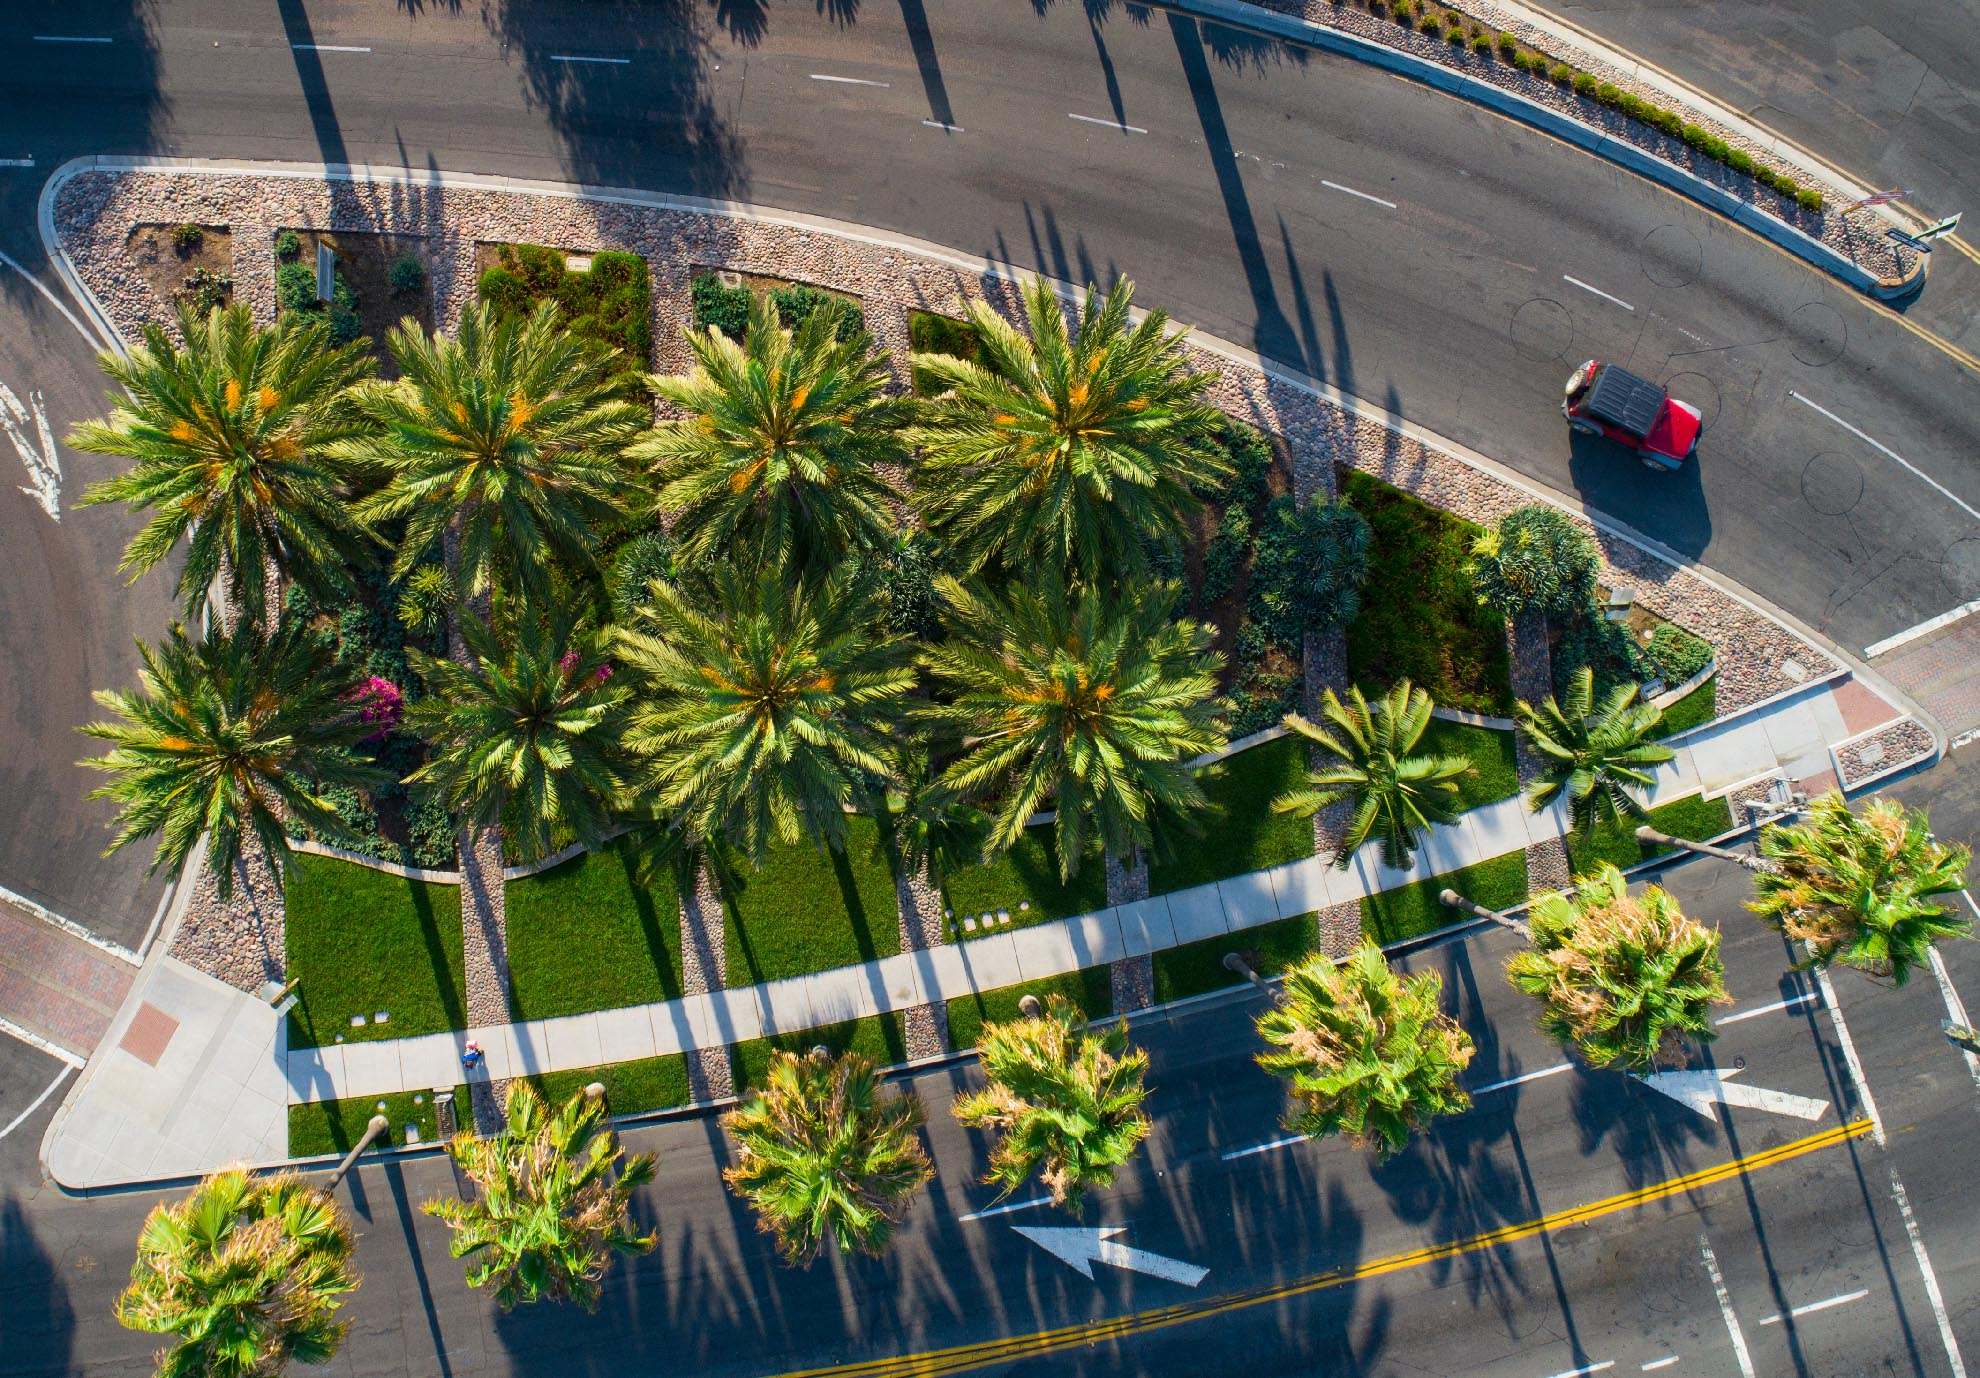 Drone Photograph of birds eye view of Red Jeep at Intersection in California